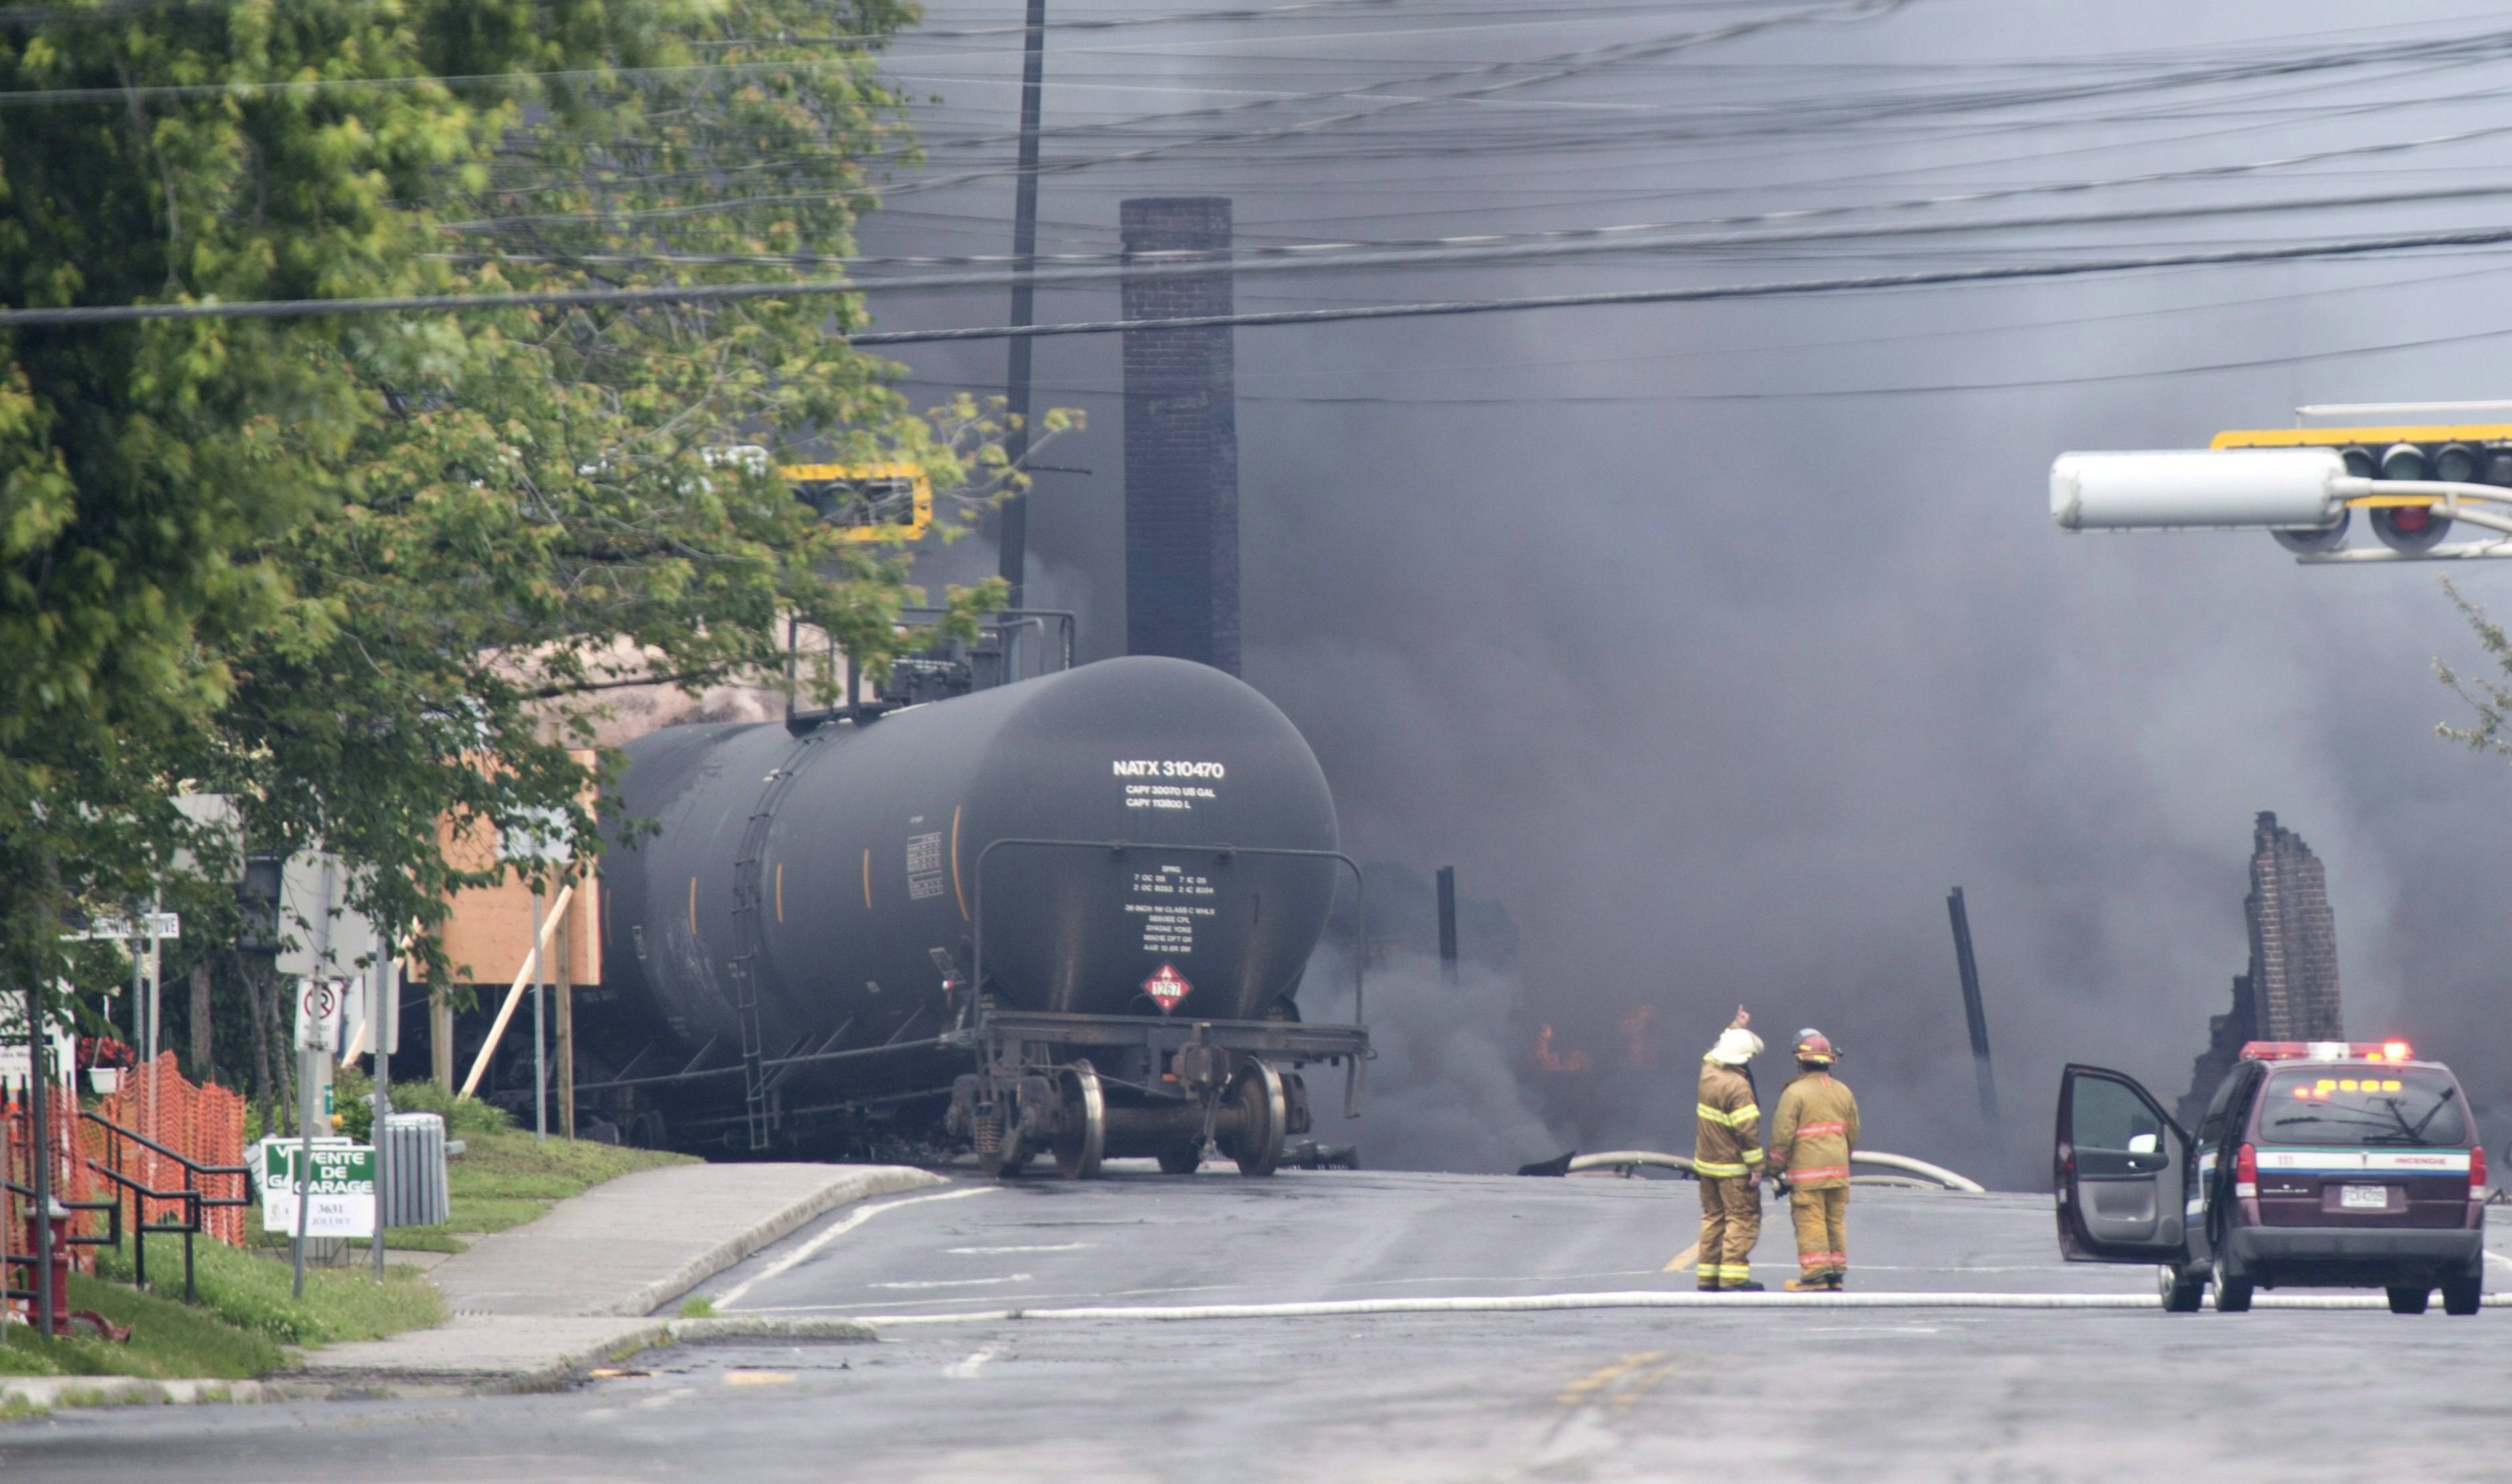 Smoke rises from railway cars carrying crude oil after derailing in downtown Lac-Megantic, Quebec. Lac-Megantic still struggles to recover as it marks the disaster's one-year anniversary.